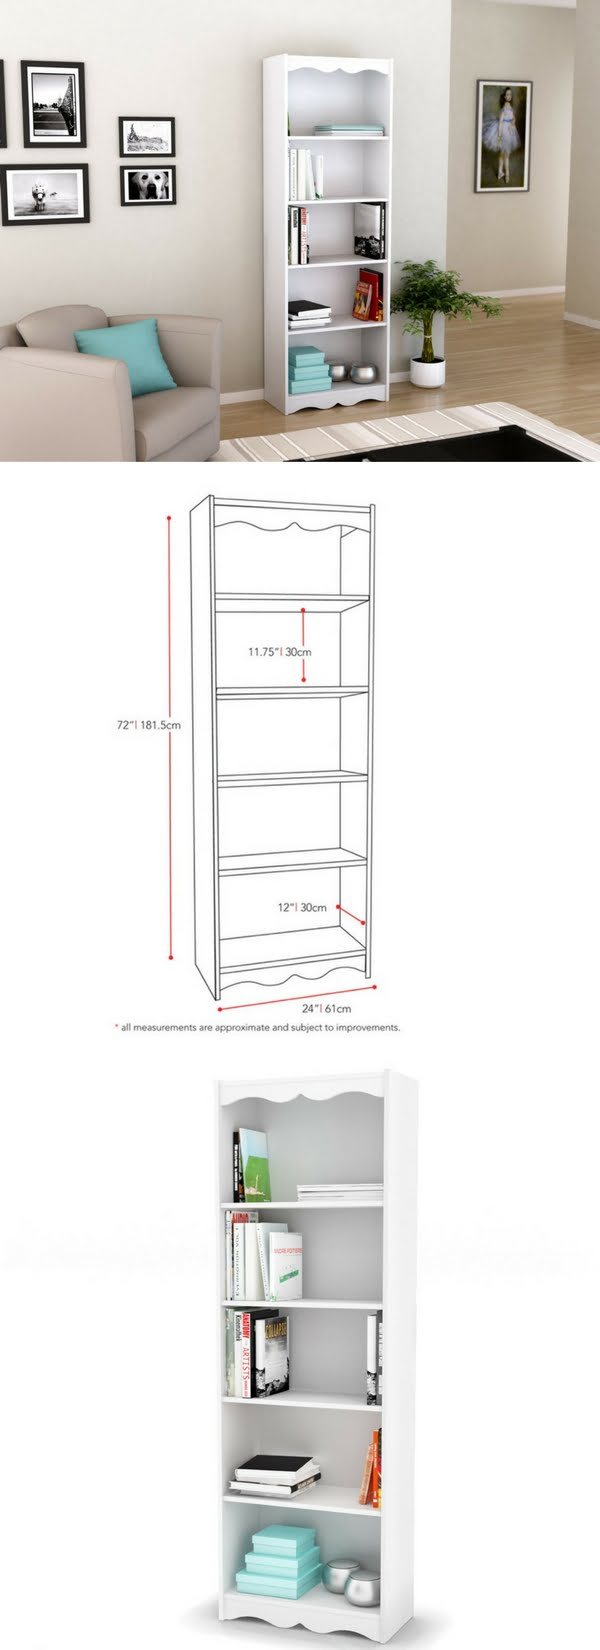 Check out the Sonax Hawthorn Bookcase